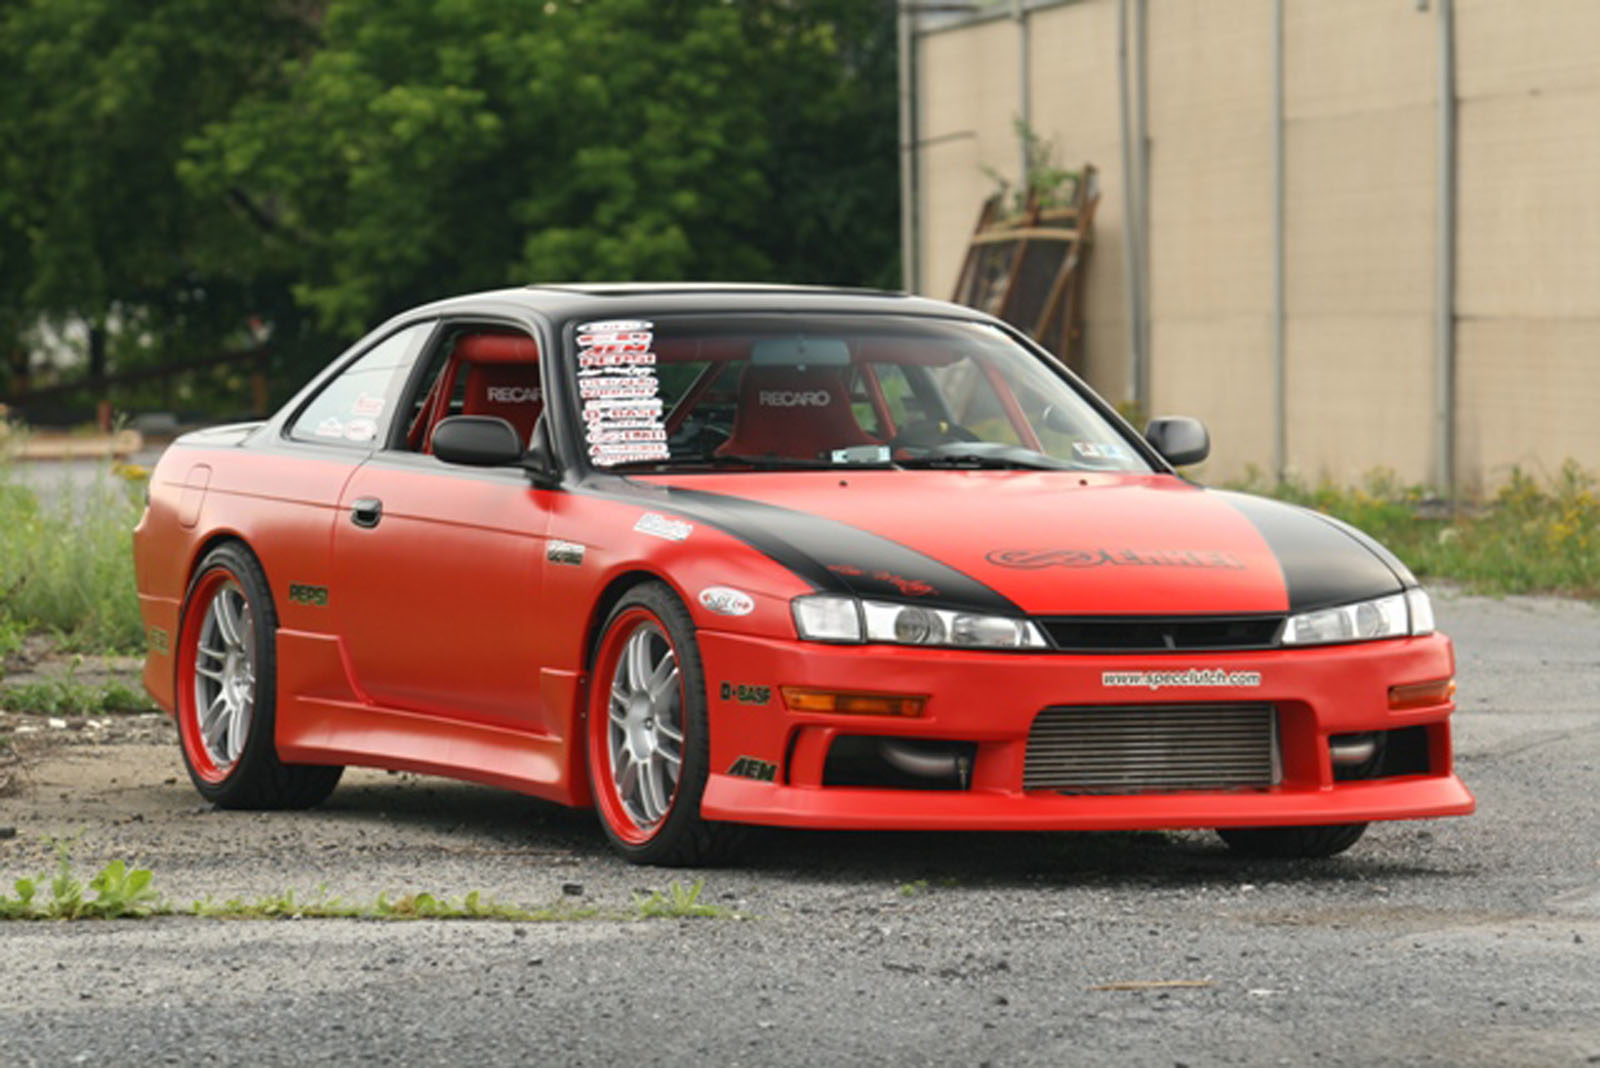 1997 nissan nissan s14 240sx s14 for sale bethlehem for Nissan 240sx motor for sale